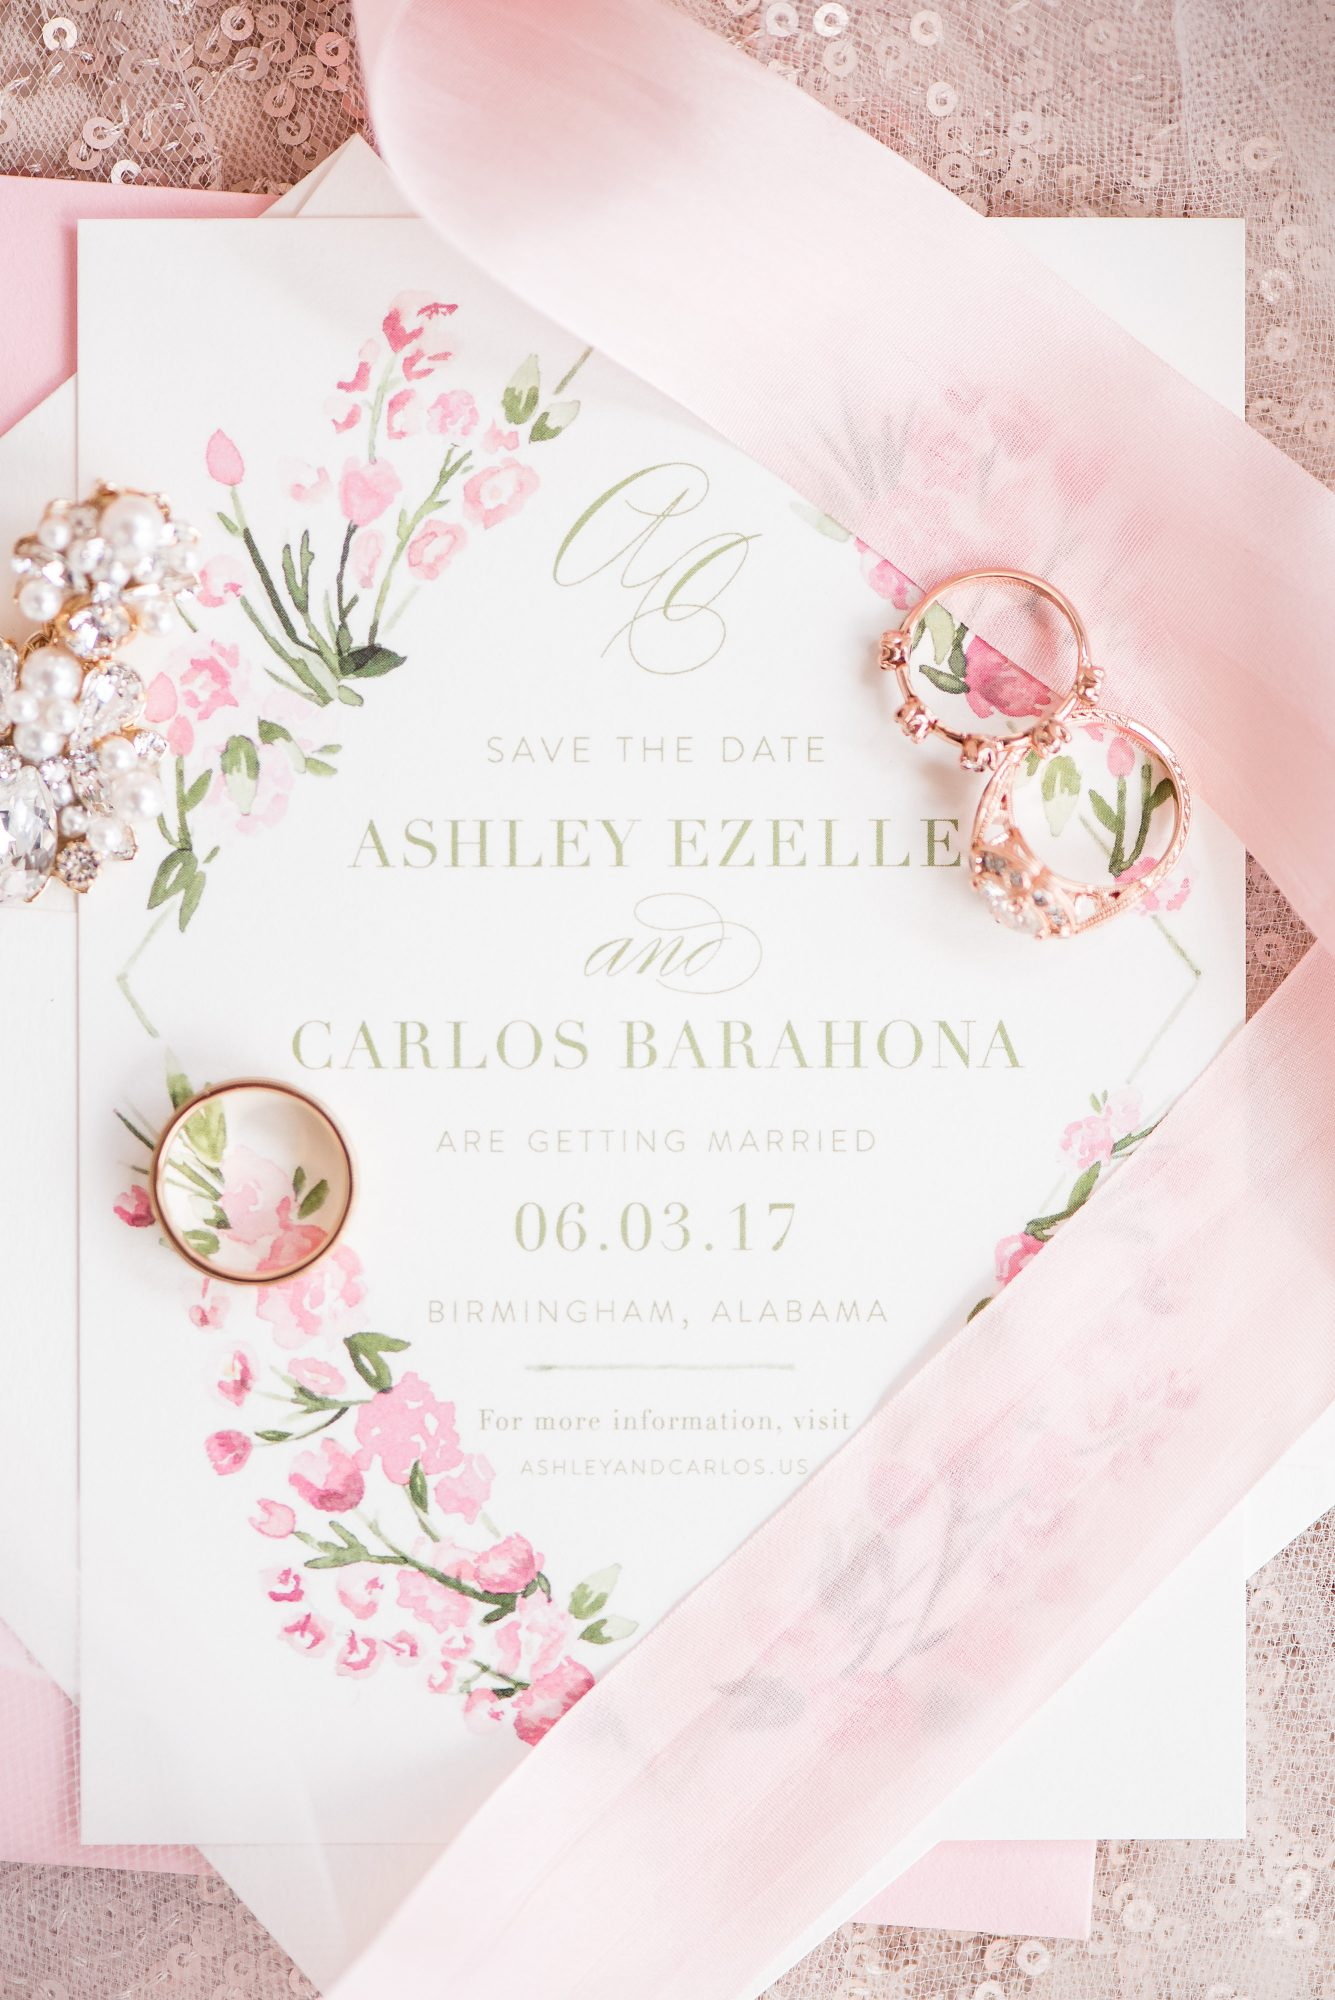 Wedding Invitations Sent Out: When To Send Wedding Invitations